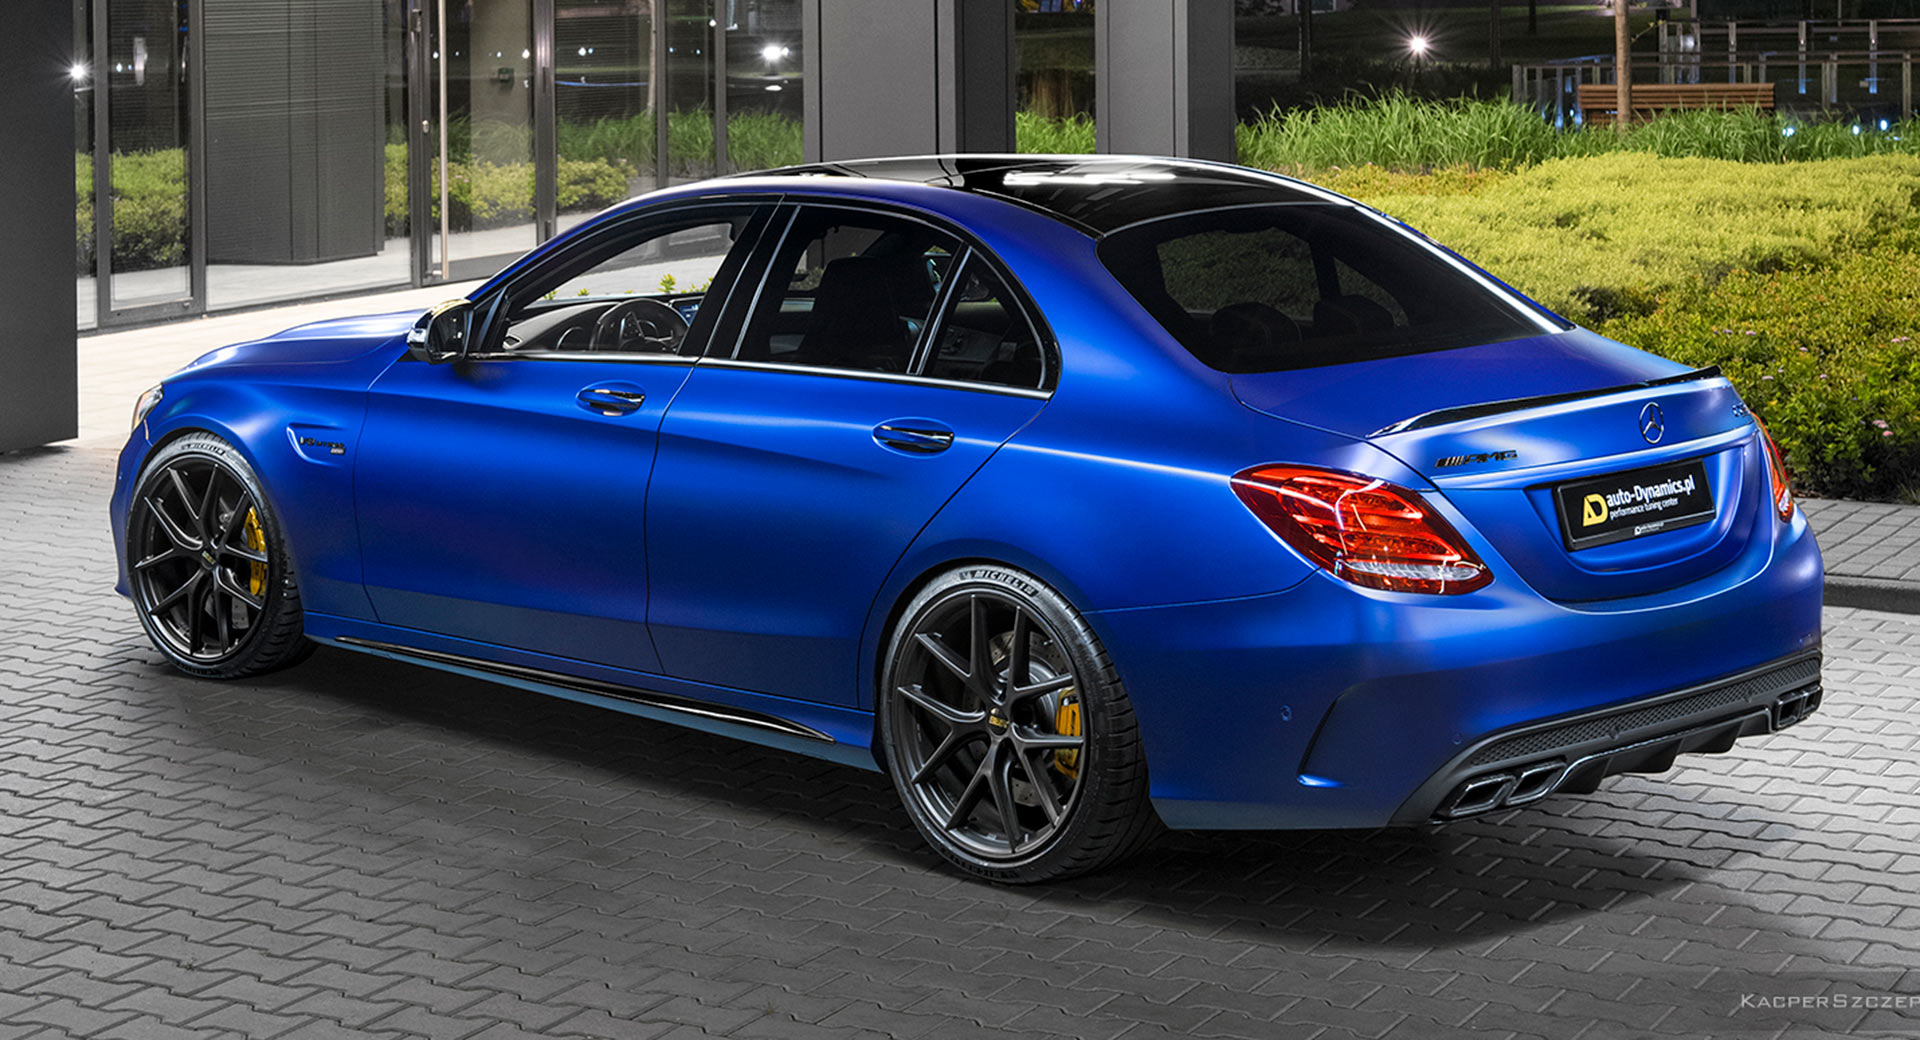 Mercedes Amg C63 S Charon By Auto Dynamics Looks Rather Reserved For An 834 Hp Super Sedan Carscoops